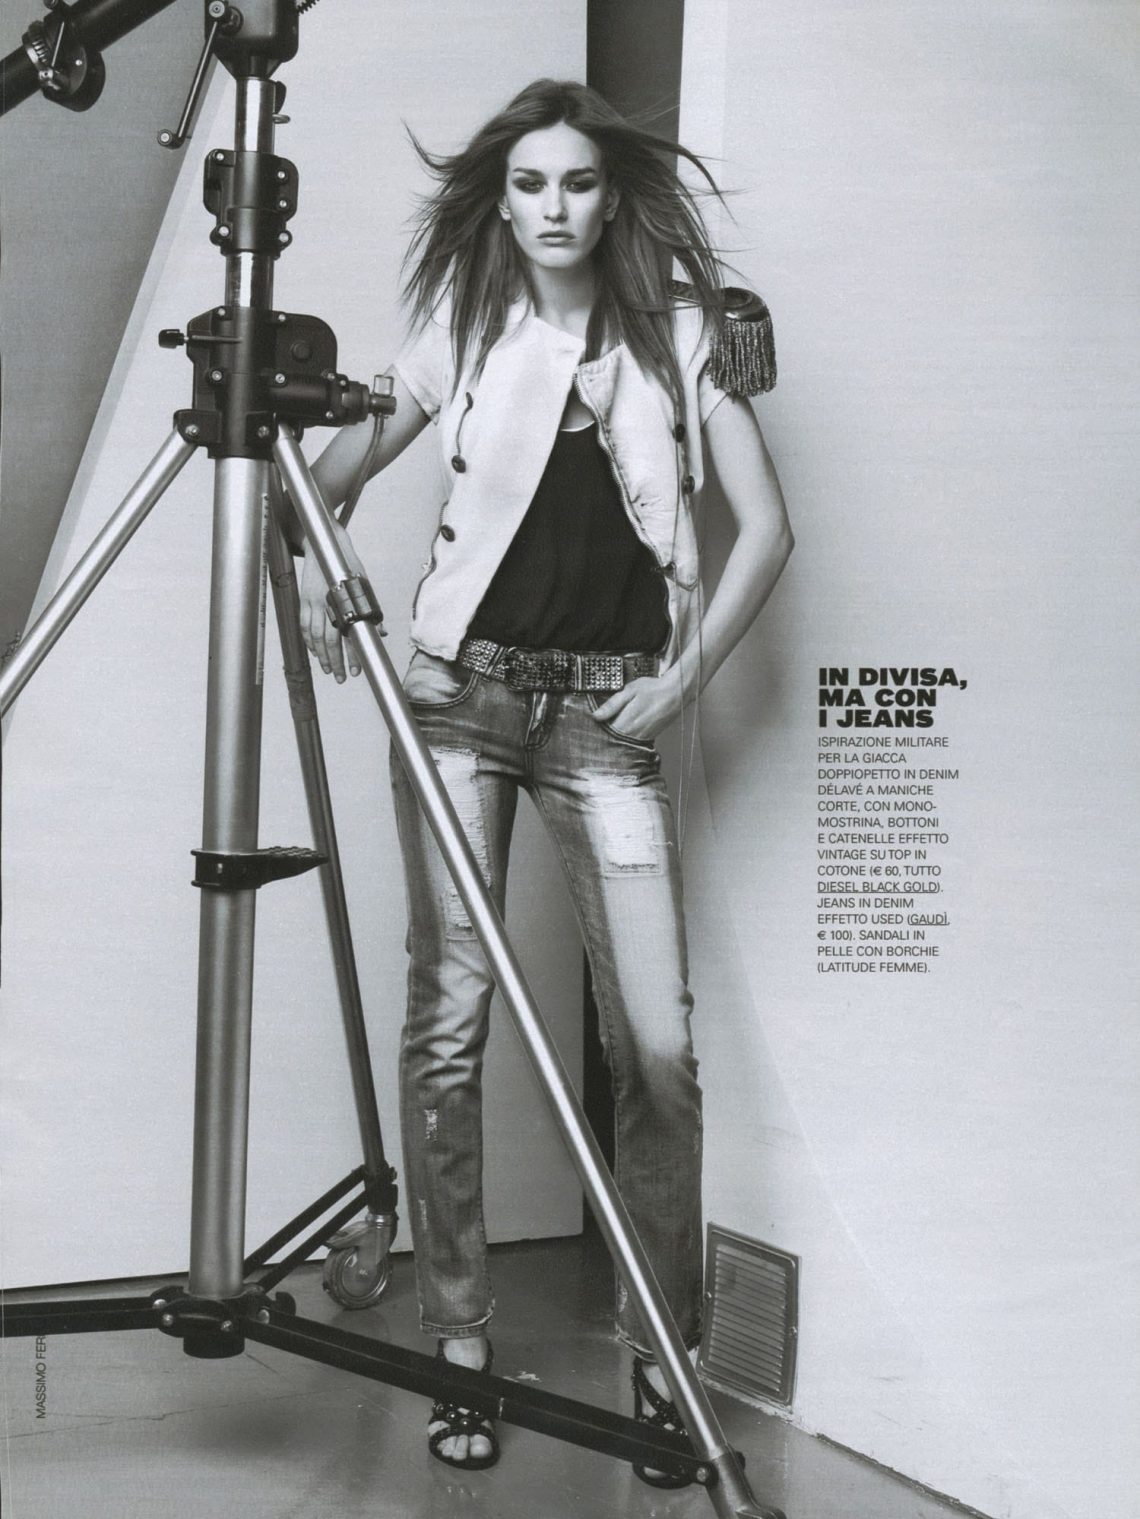 Balistarz-model-Zane-Garlaskelli-fashion-spread-on-grazia-magazine-jeans-style-black-and-white-image